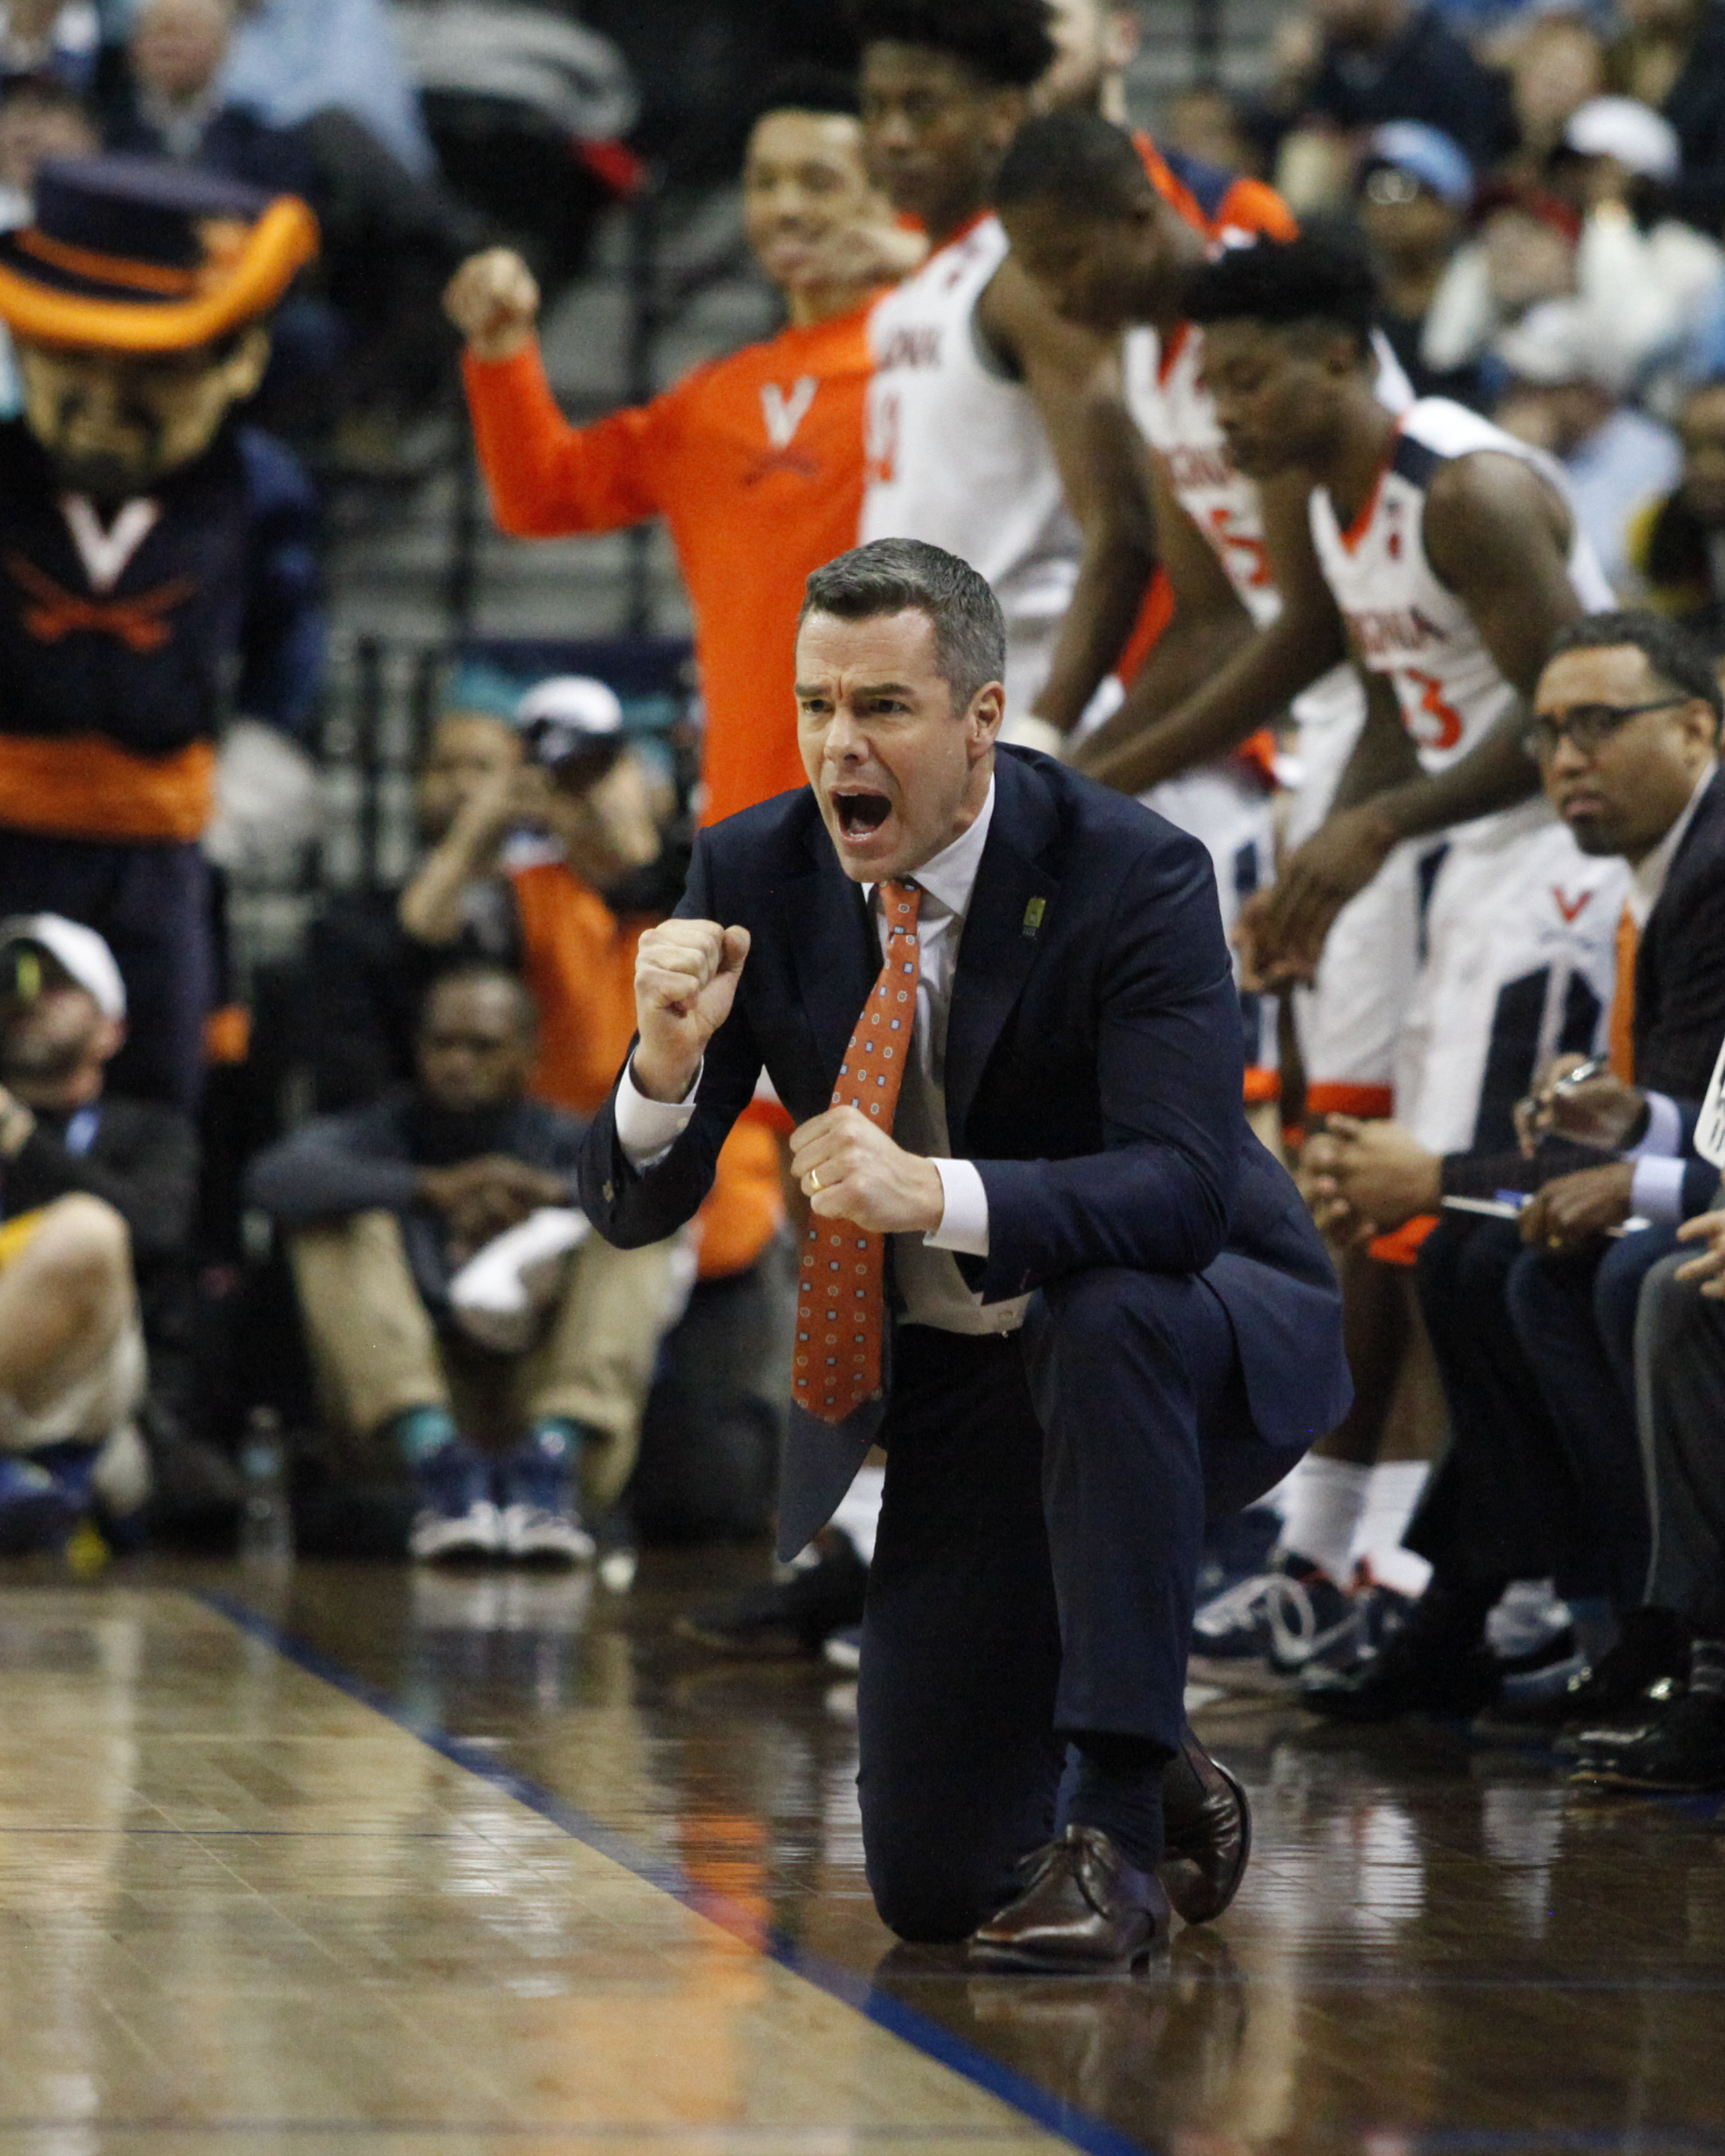 Virginia head coach, Tony Bennett, tries to rally his team during the NCAA Tournament in Charlotte, North Carolina.